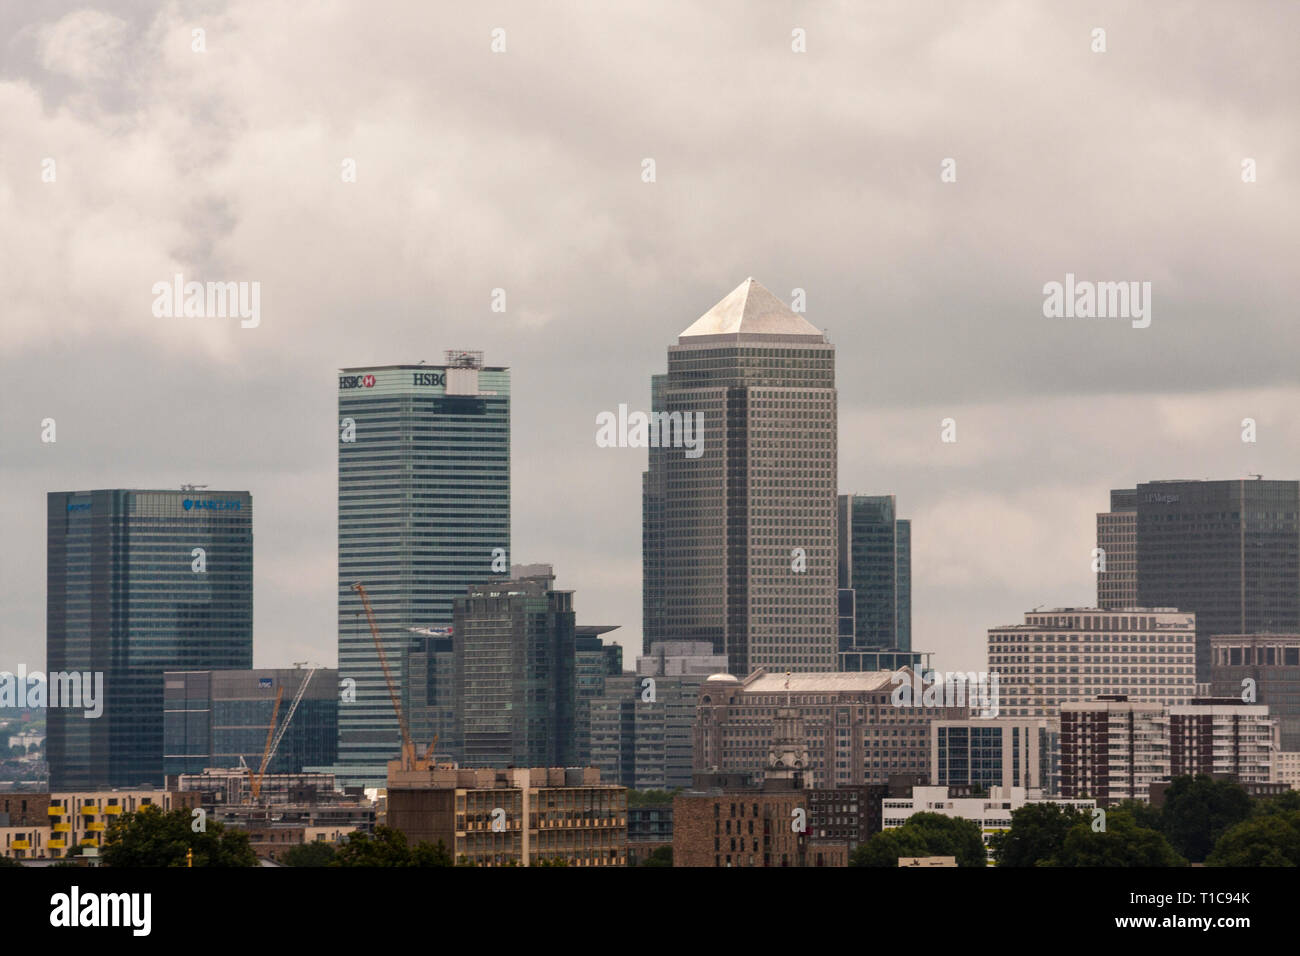 A view of the London skyline over Canary Wharf - Stock Image